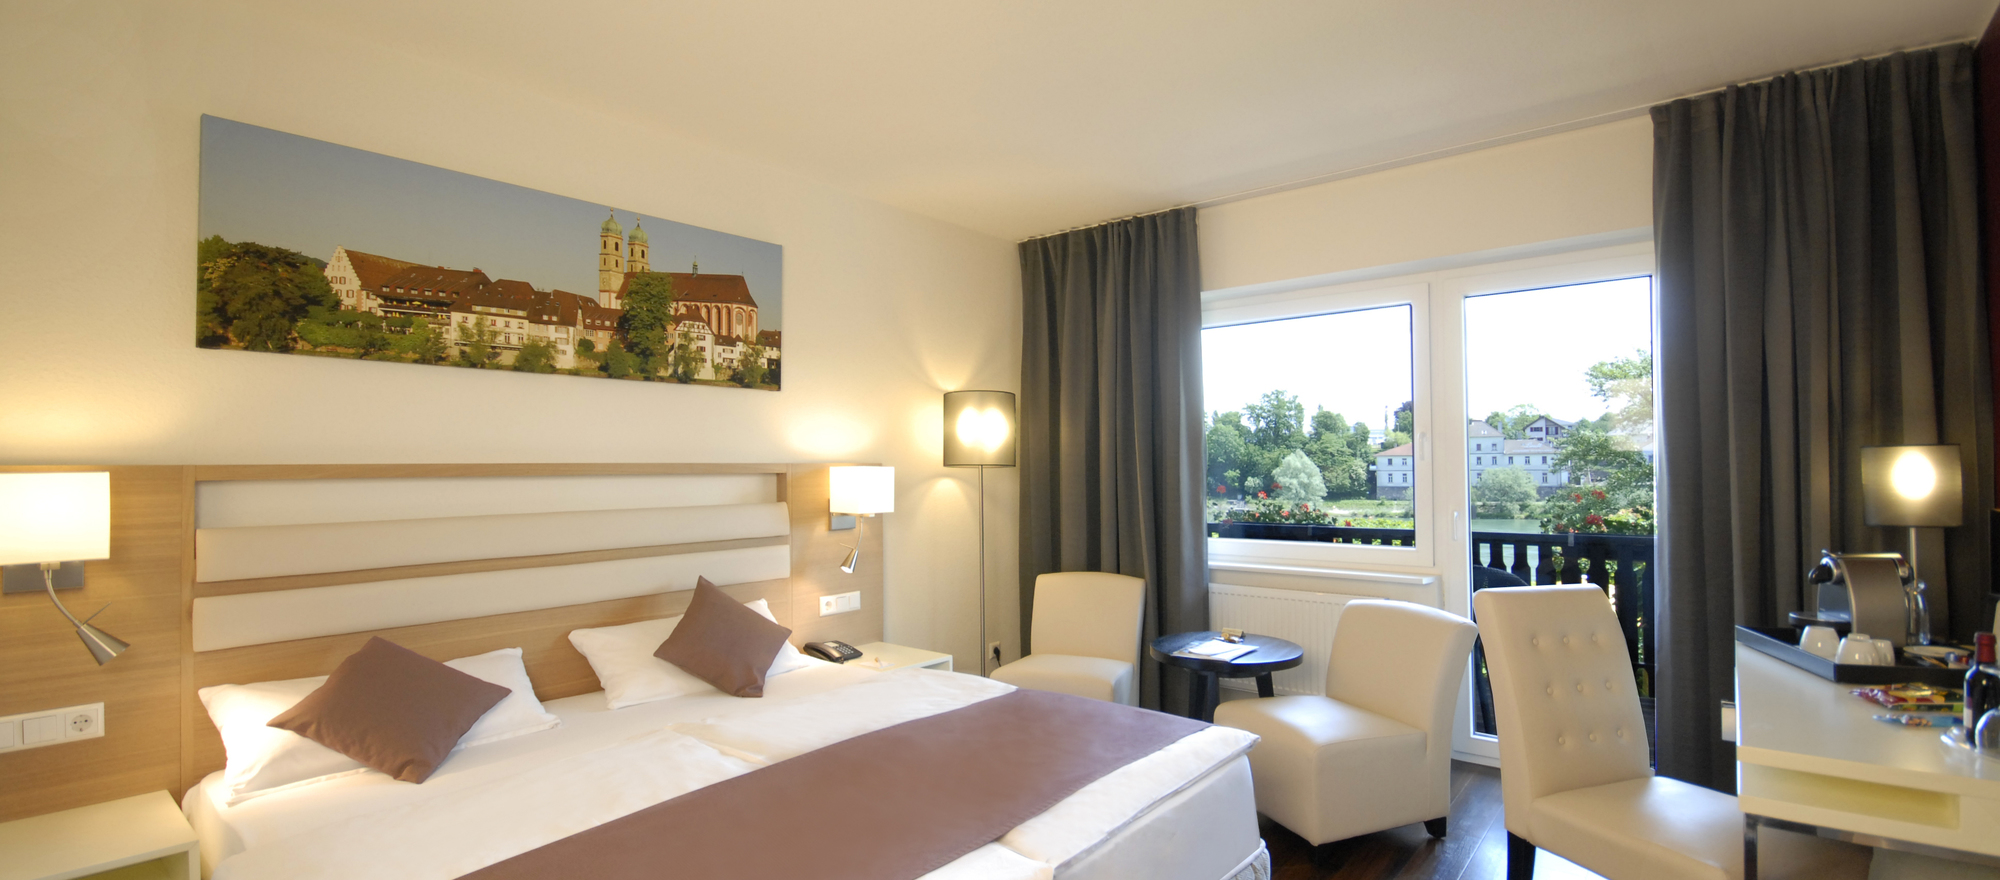 Double room with balcony in Ringhotel Goldener Knopf in Bad Saeckingen, 4 star Hotel in the Black Forest